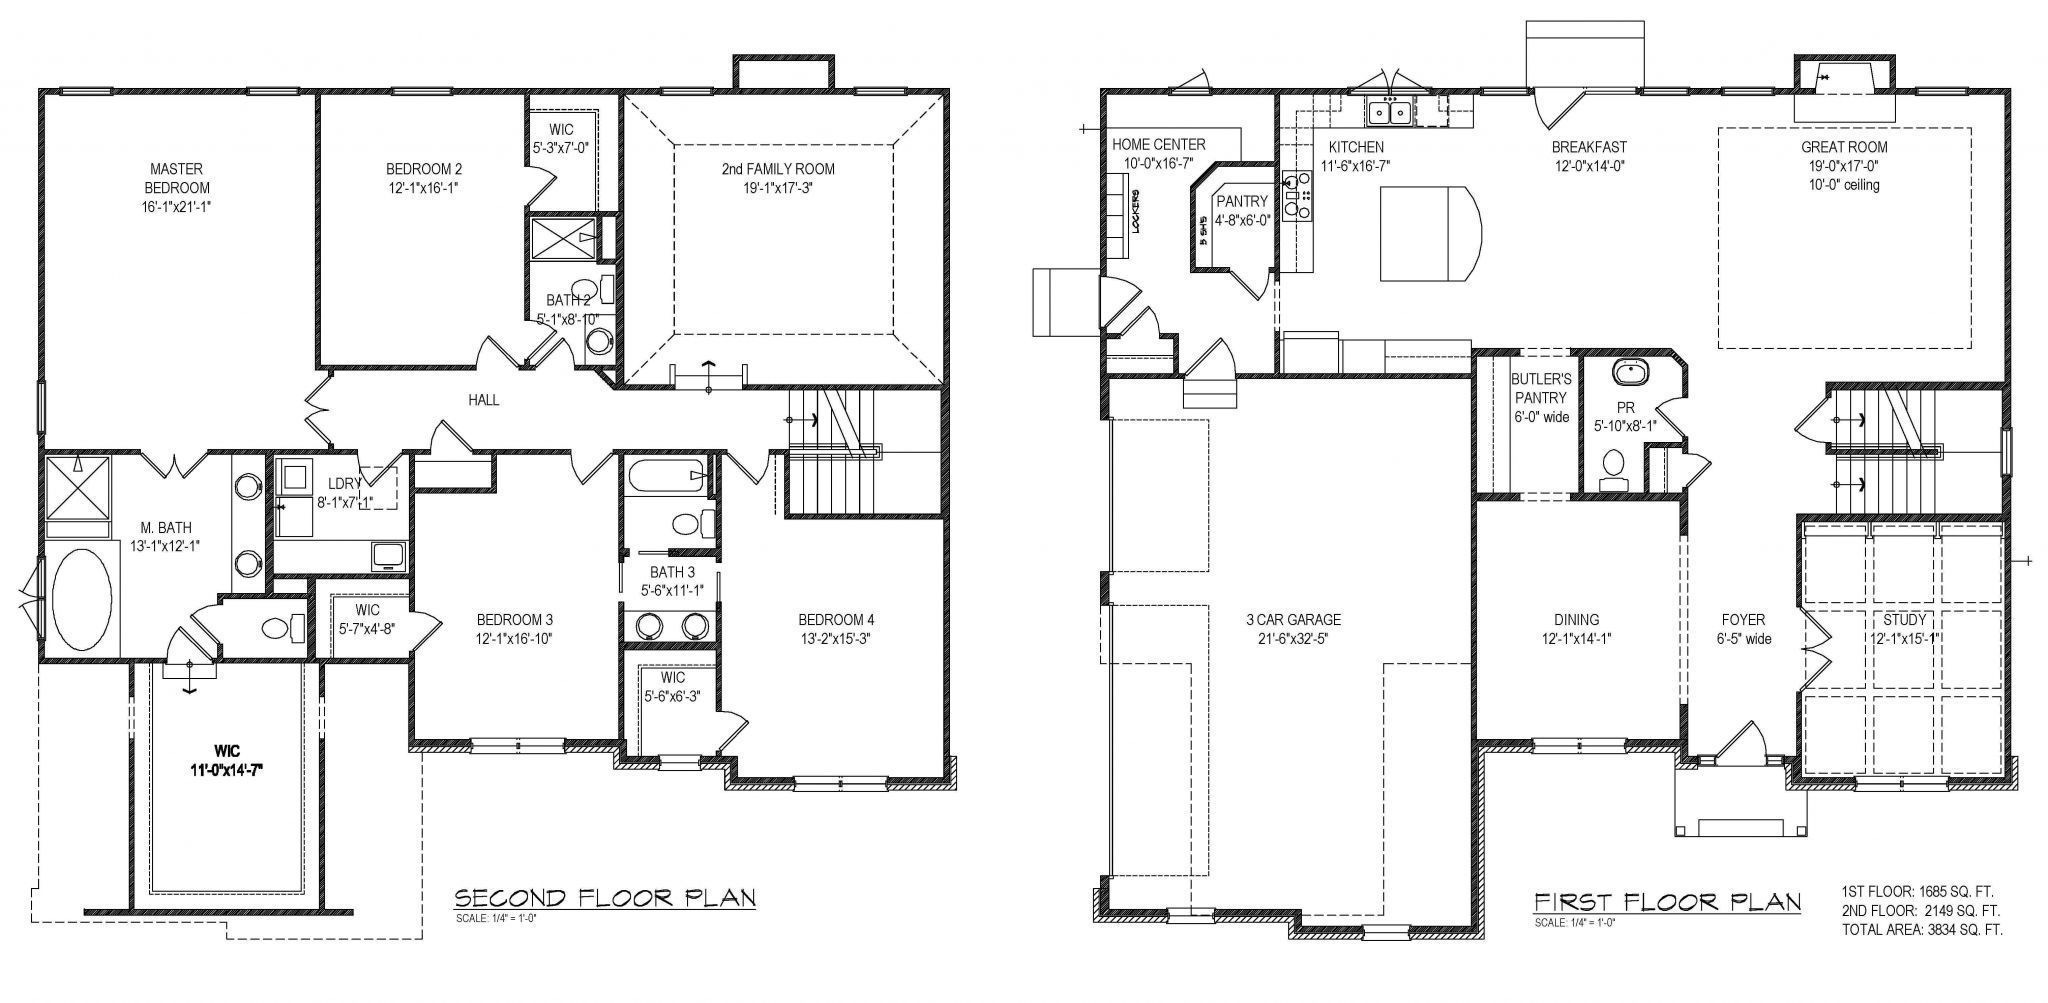 Interior Design Floor Plan Sketches Architectural Custom House Plan Maker And Interior Design Floor Plan S House Plan Maker House Floor Plans Custom Home Plans